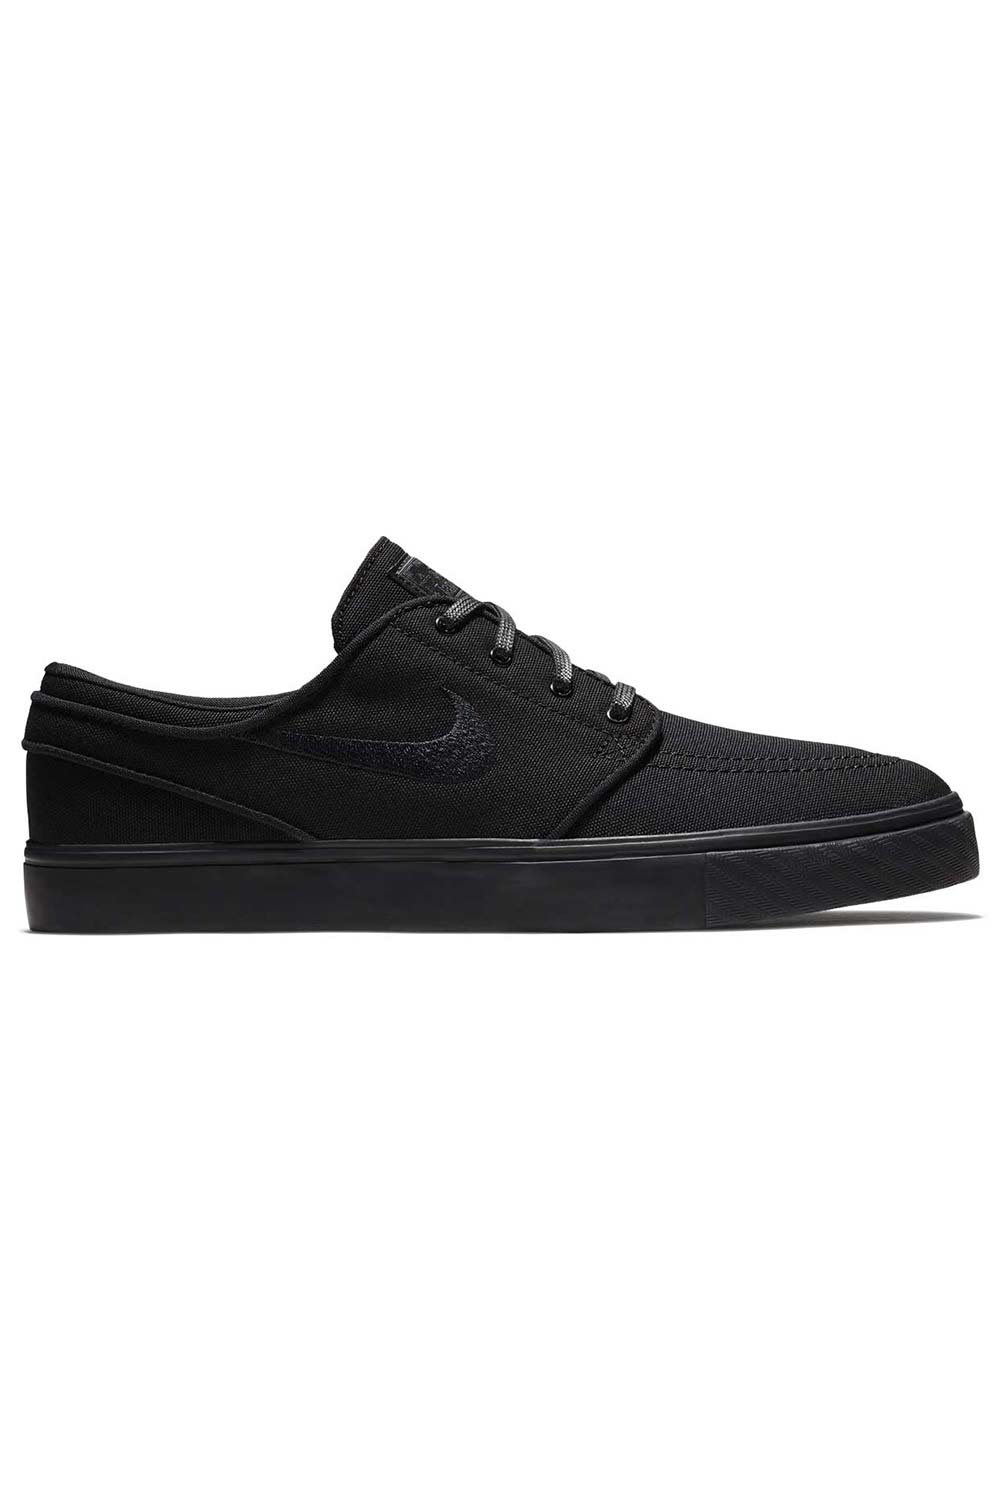 Nike SB Zoom Stefan Janoski Canvas Shoes - Black/Black